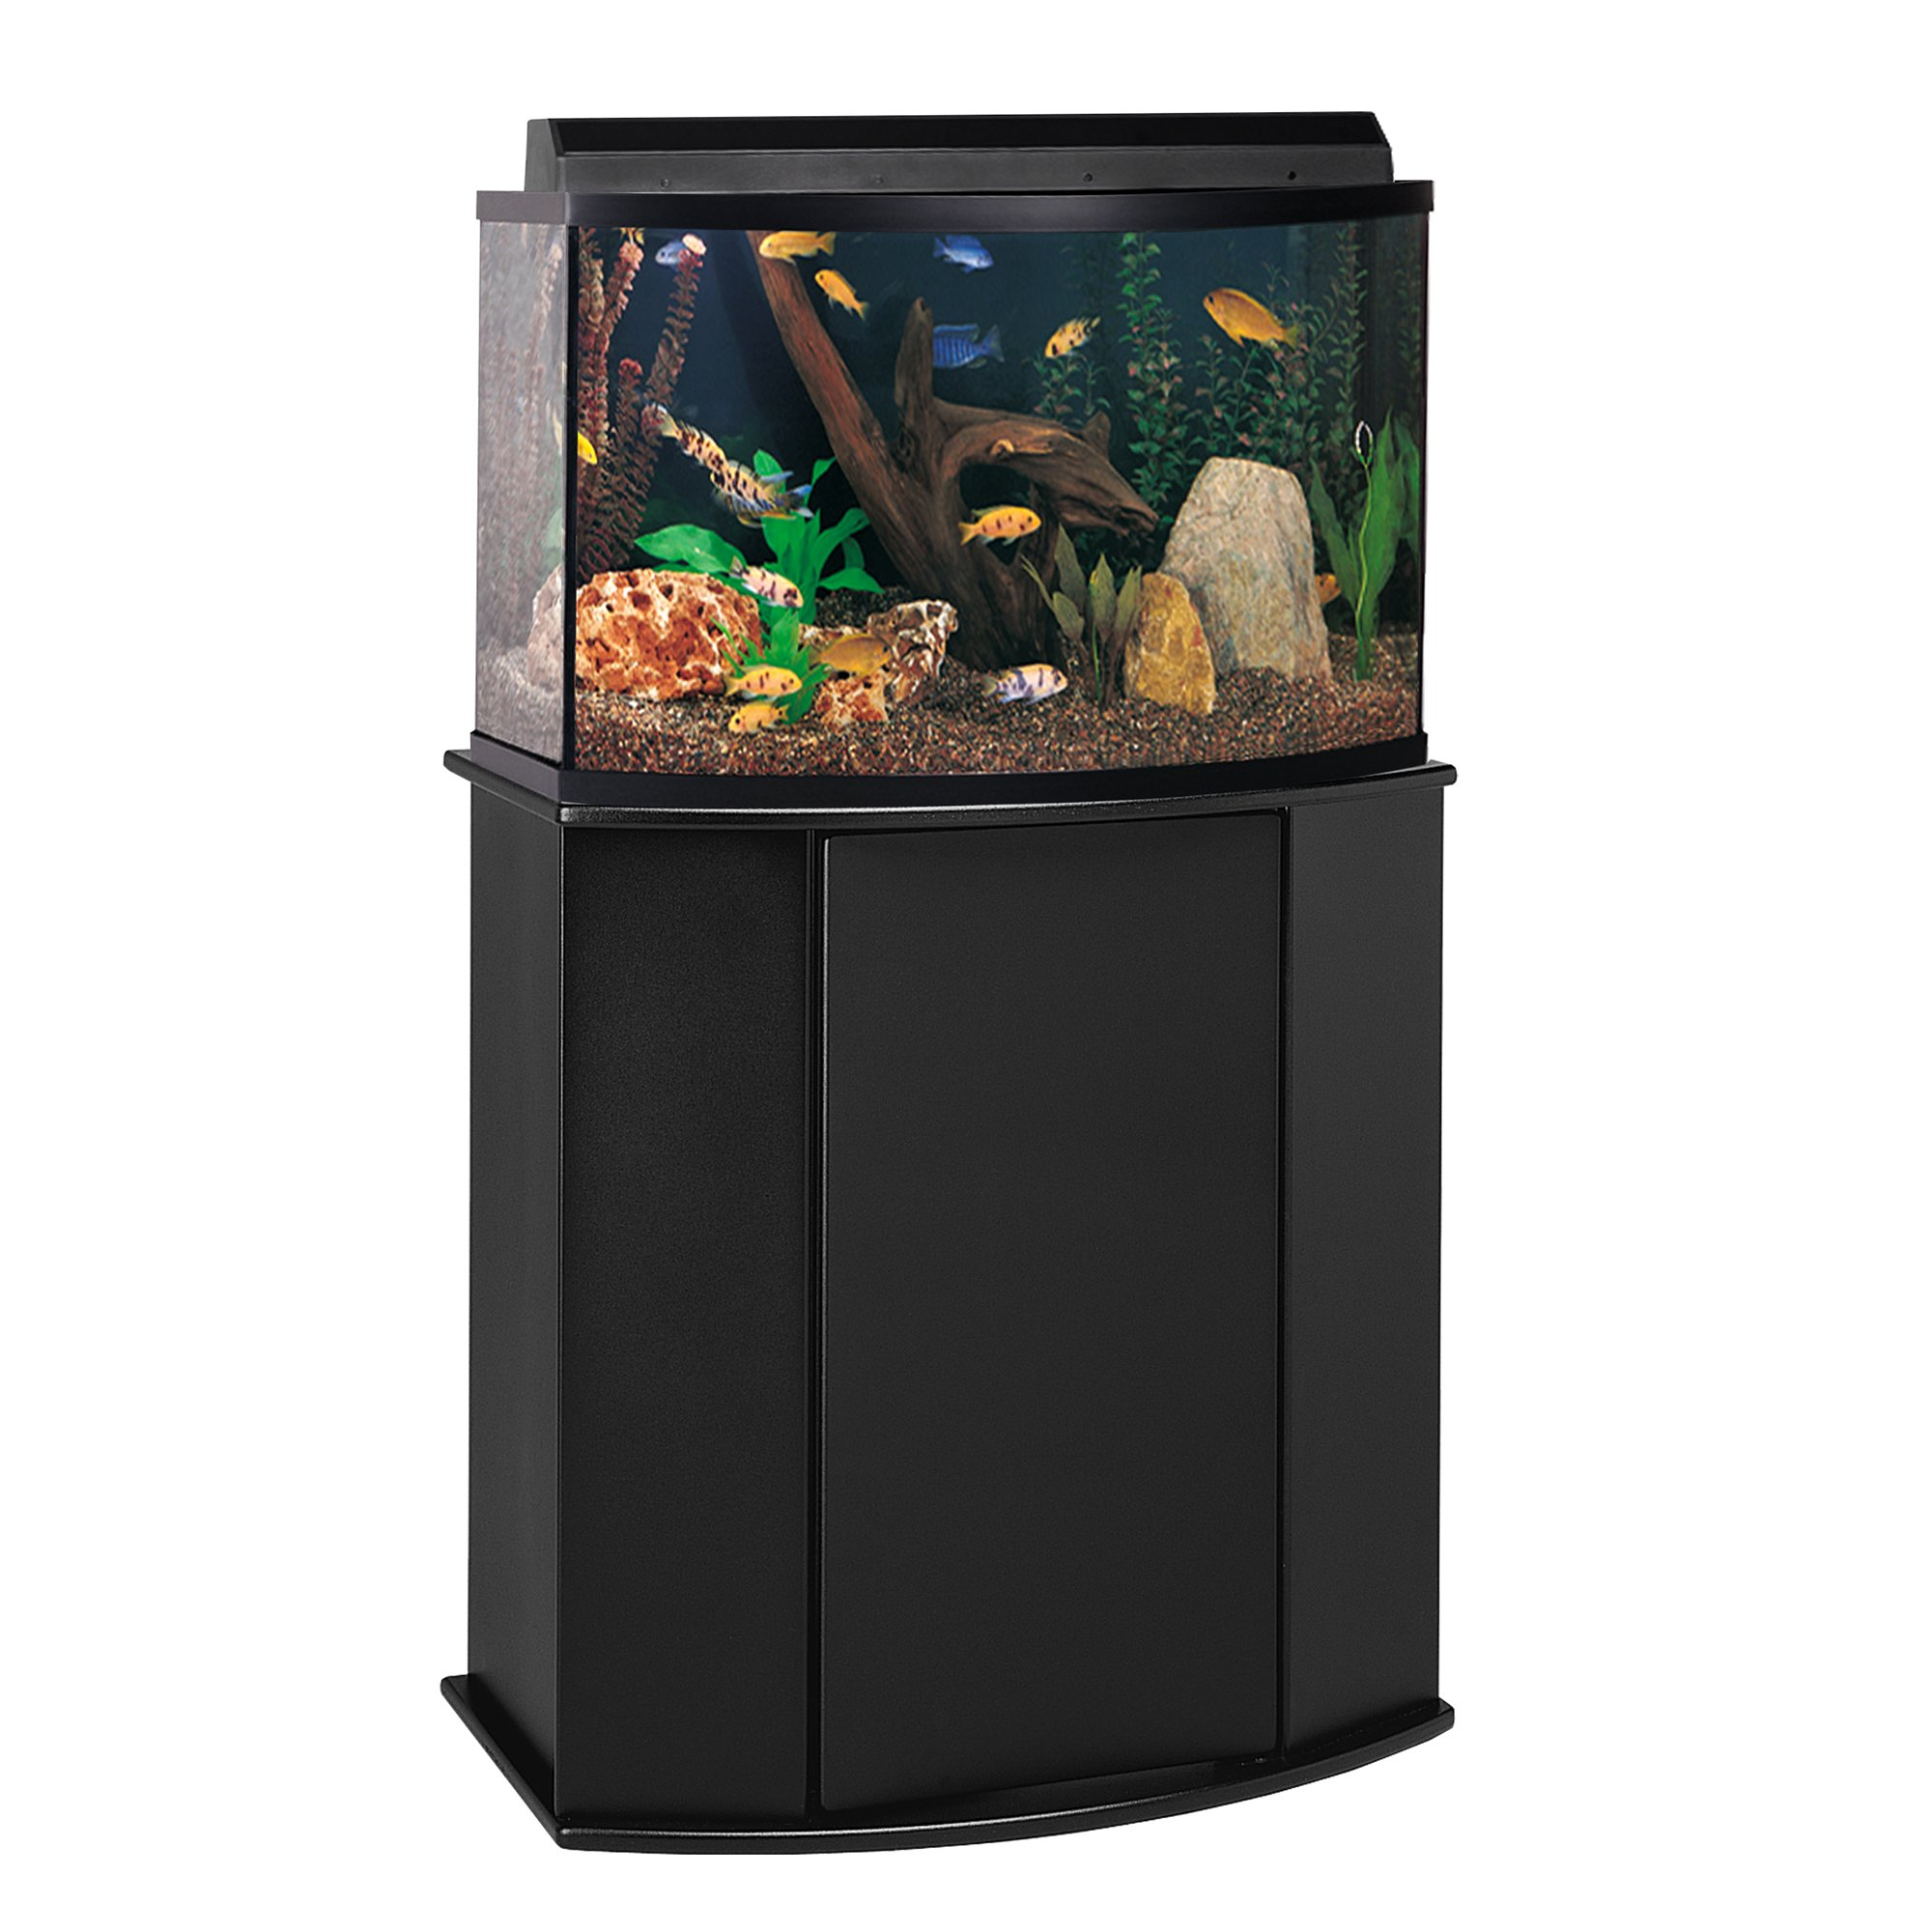 Aquarium stand petco fundamentals black scroll aquarium for 38 gallon fish tank